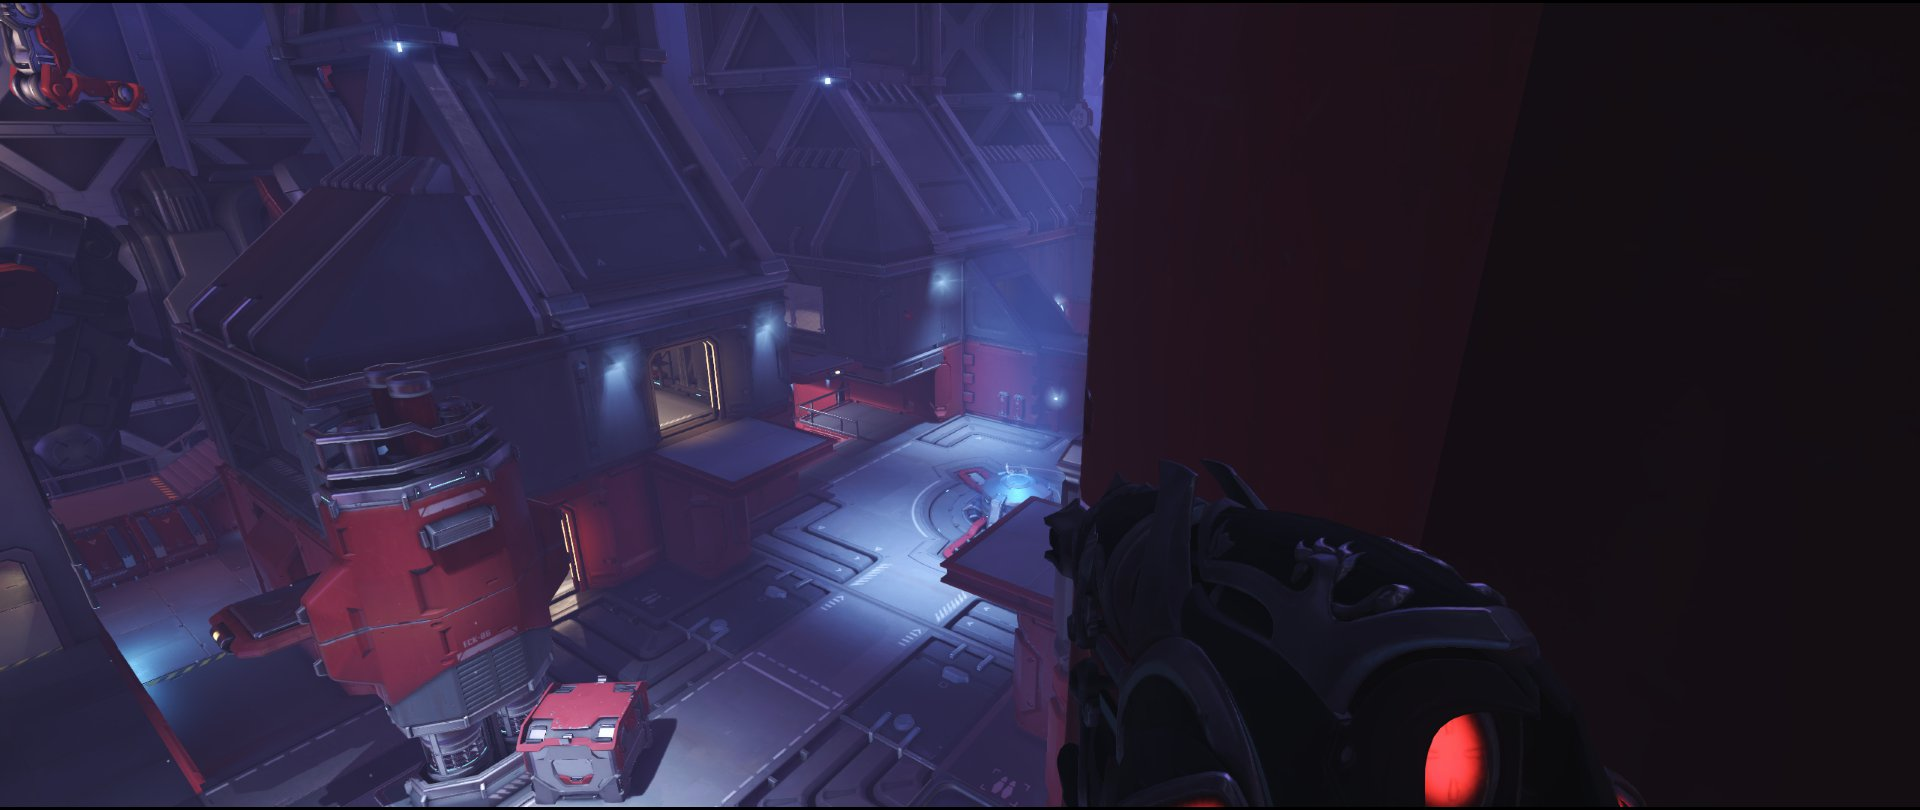 Turbine high ground view attack sniping spot Widowmaker Volskaya Industries Overwatch.jpg